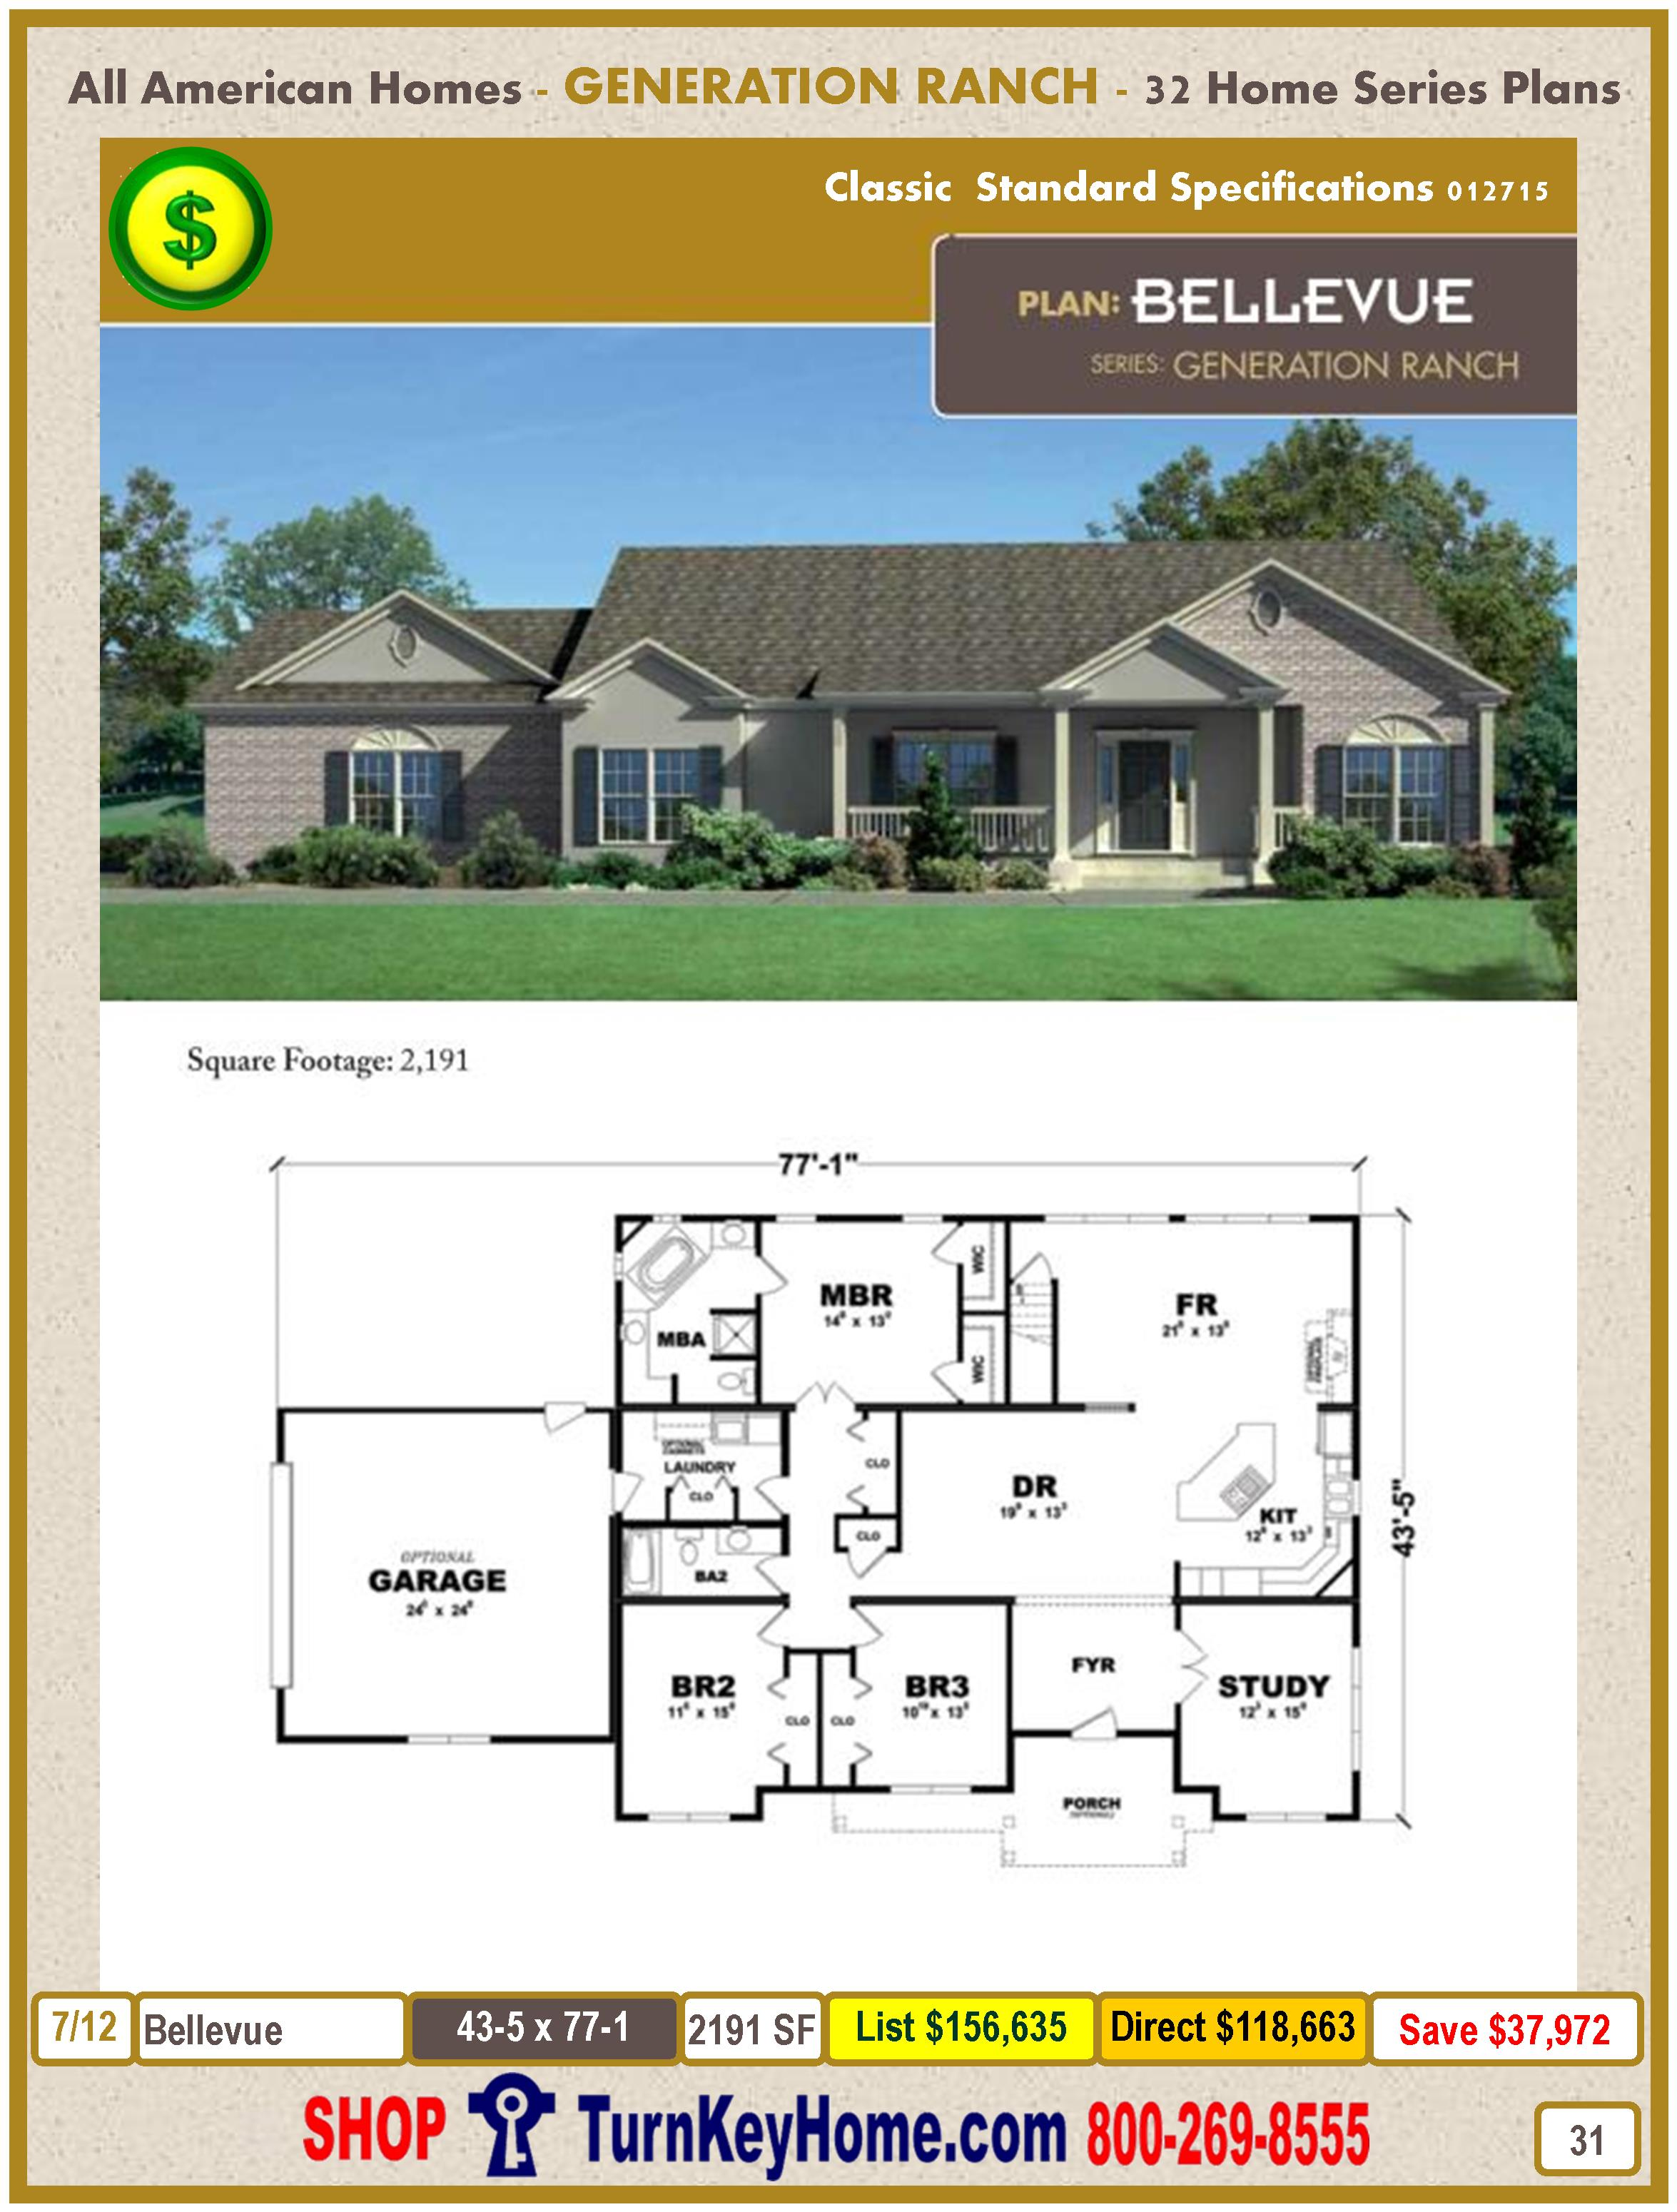 Modular.All.American.Homes.Generation.Ranch.Home.Series.Catalog.Page.31.Bellevue.Direct.Price.021415